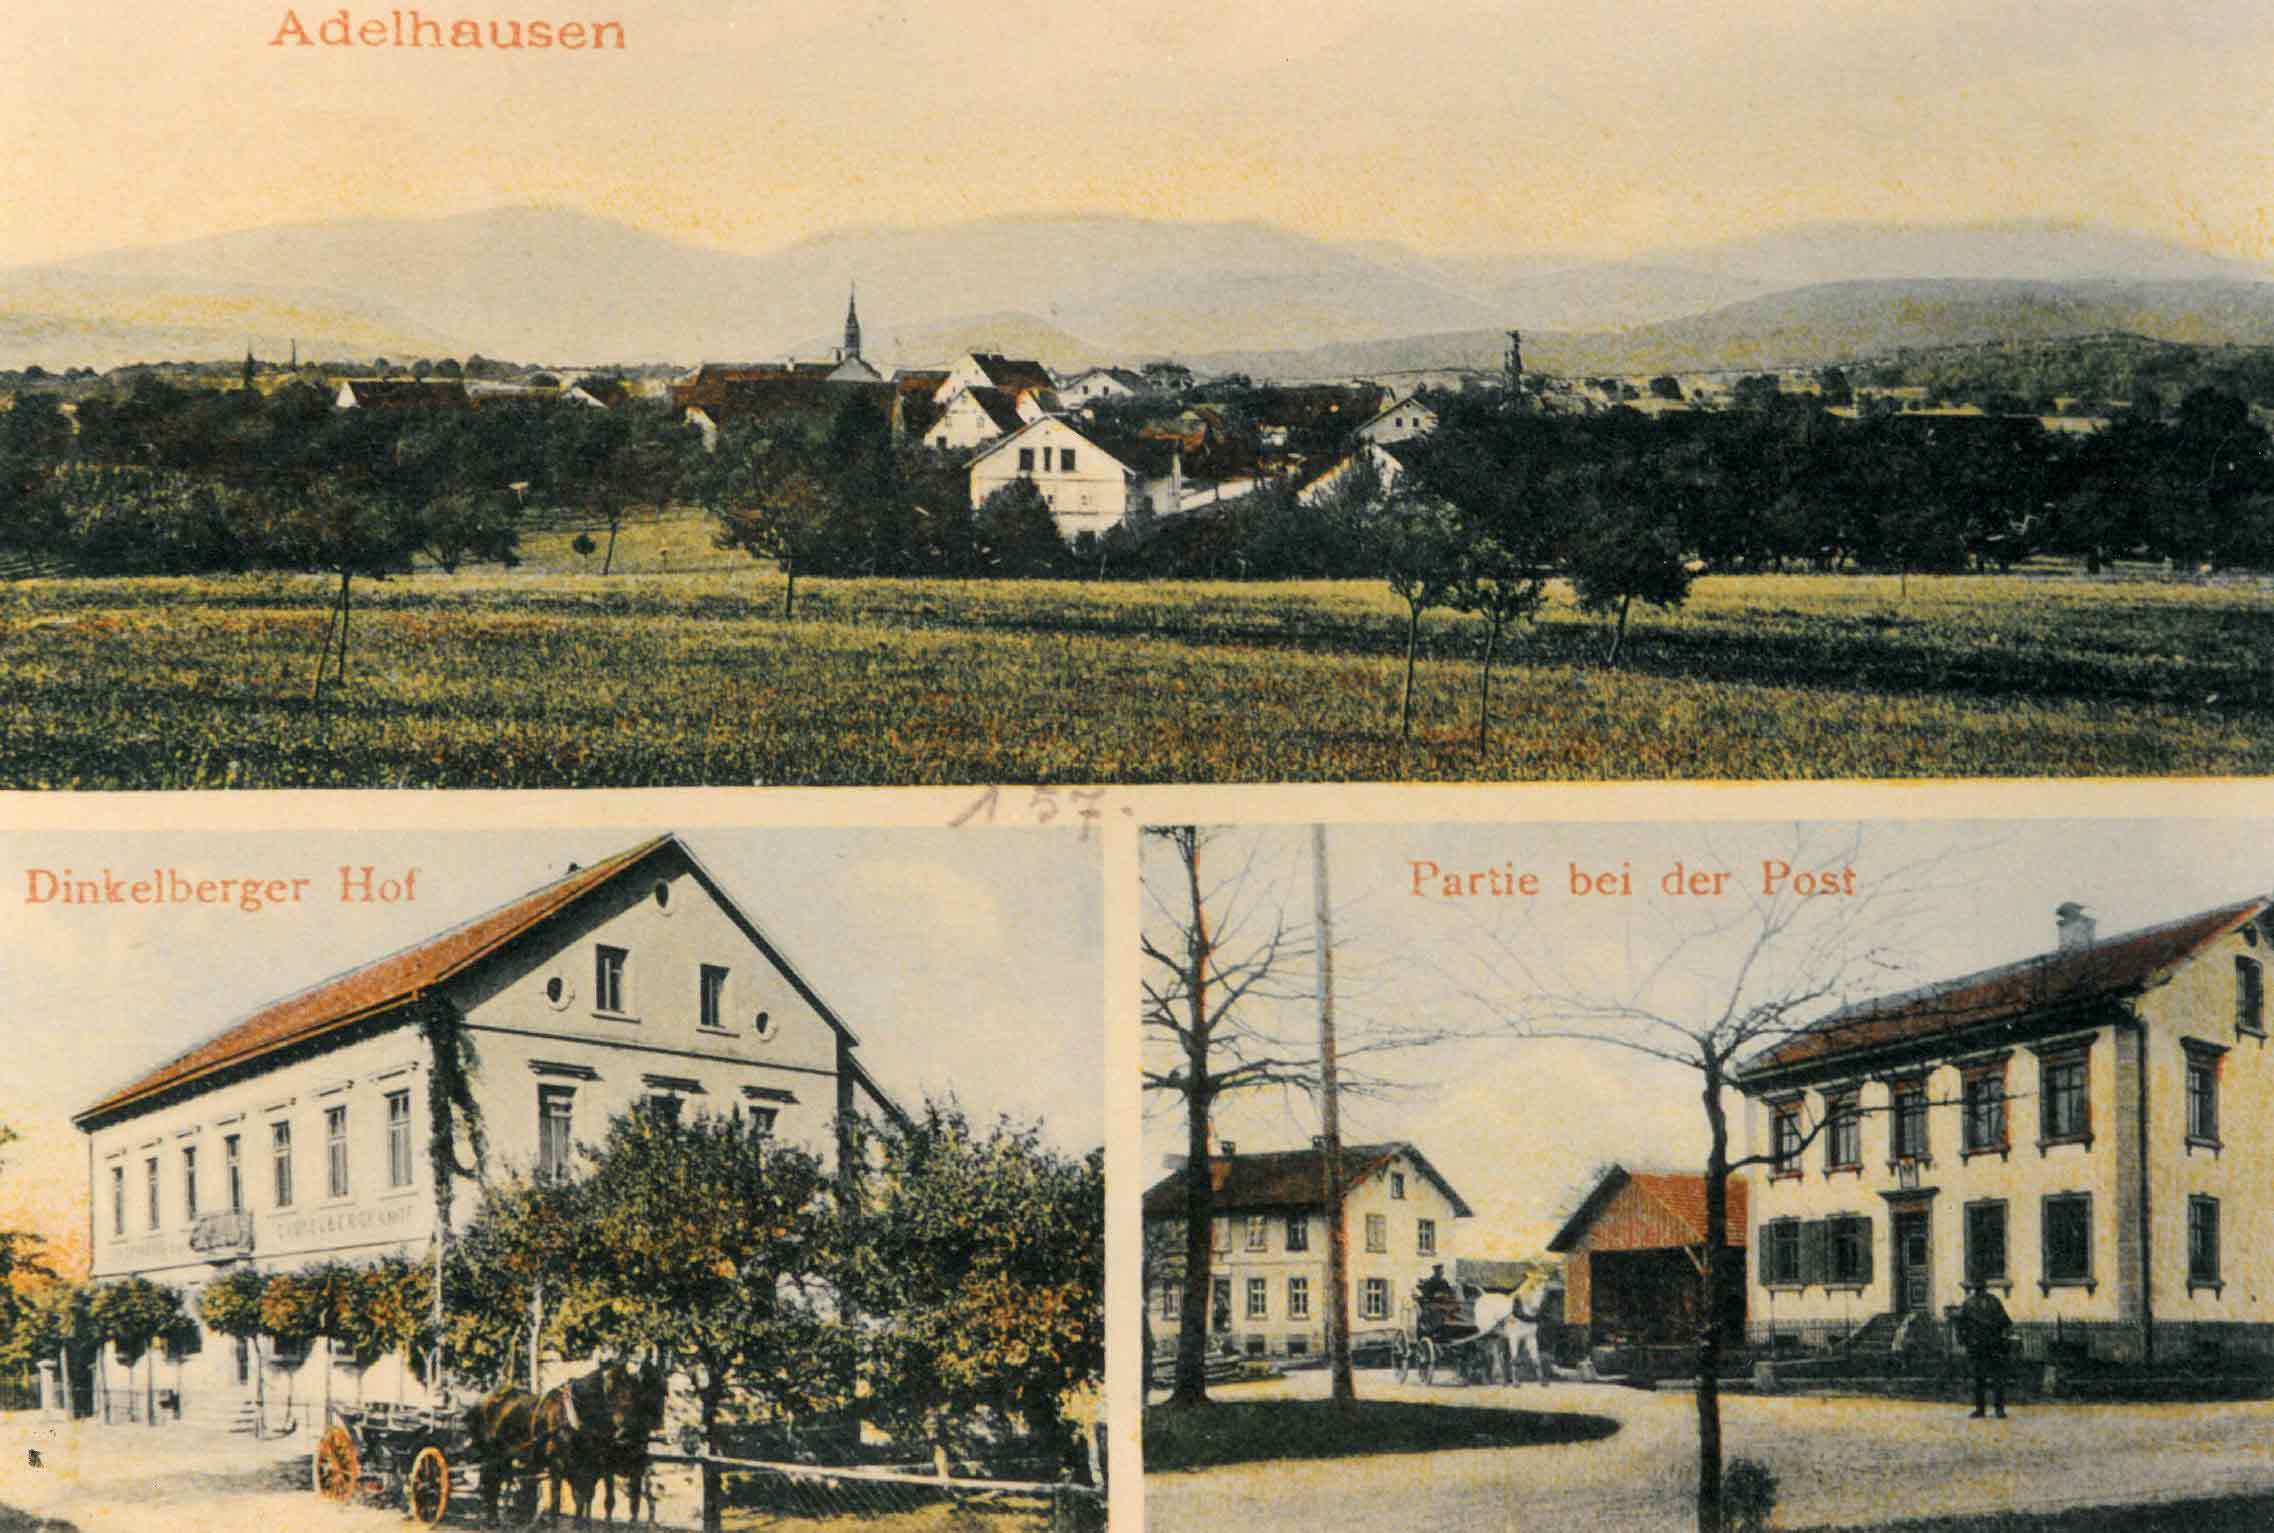 Picture postcard of Adelhausen (1920)